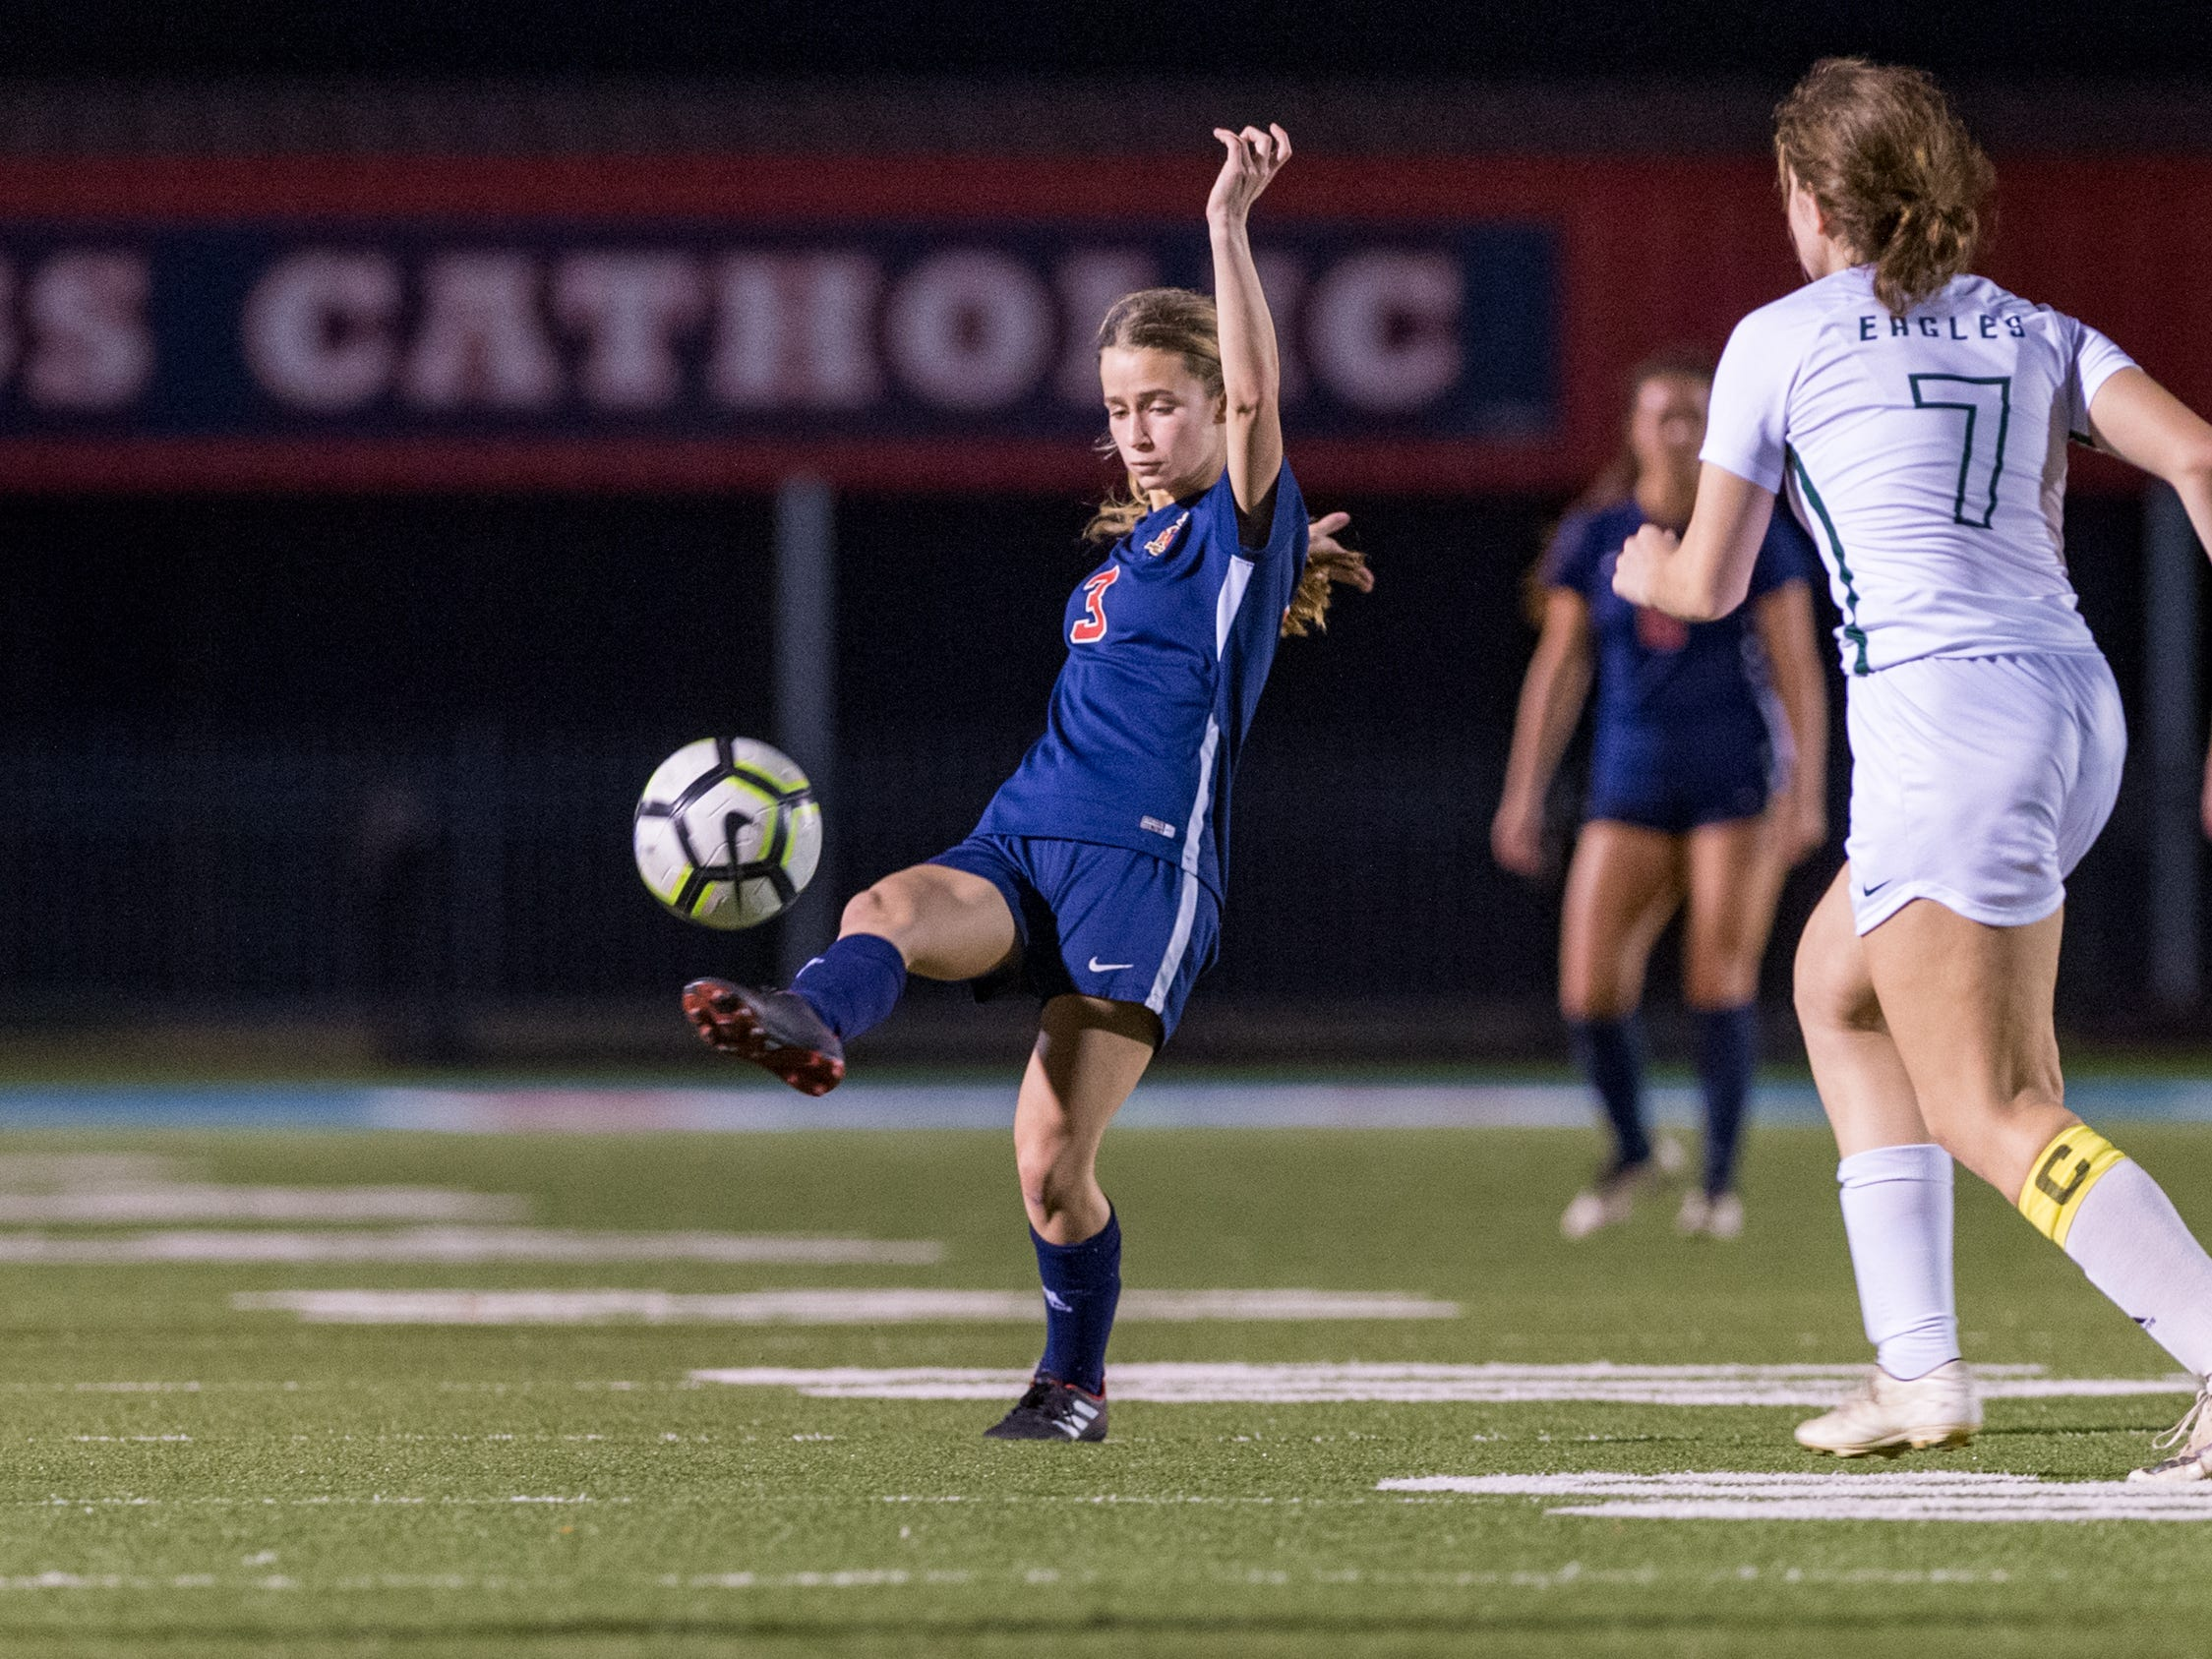 Emily Sonnier drives the ball and scores a goal as Teurlings Catholic girls soccer takes down Holy Savior Menard in the quarterfinals of the LHSAA soccer playoffs. Monday, Feb. 11, 2019.